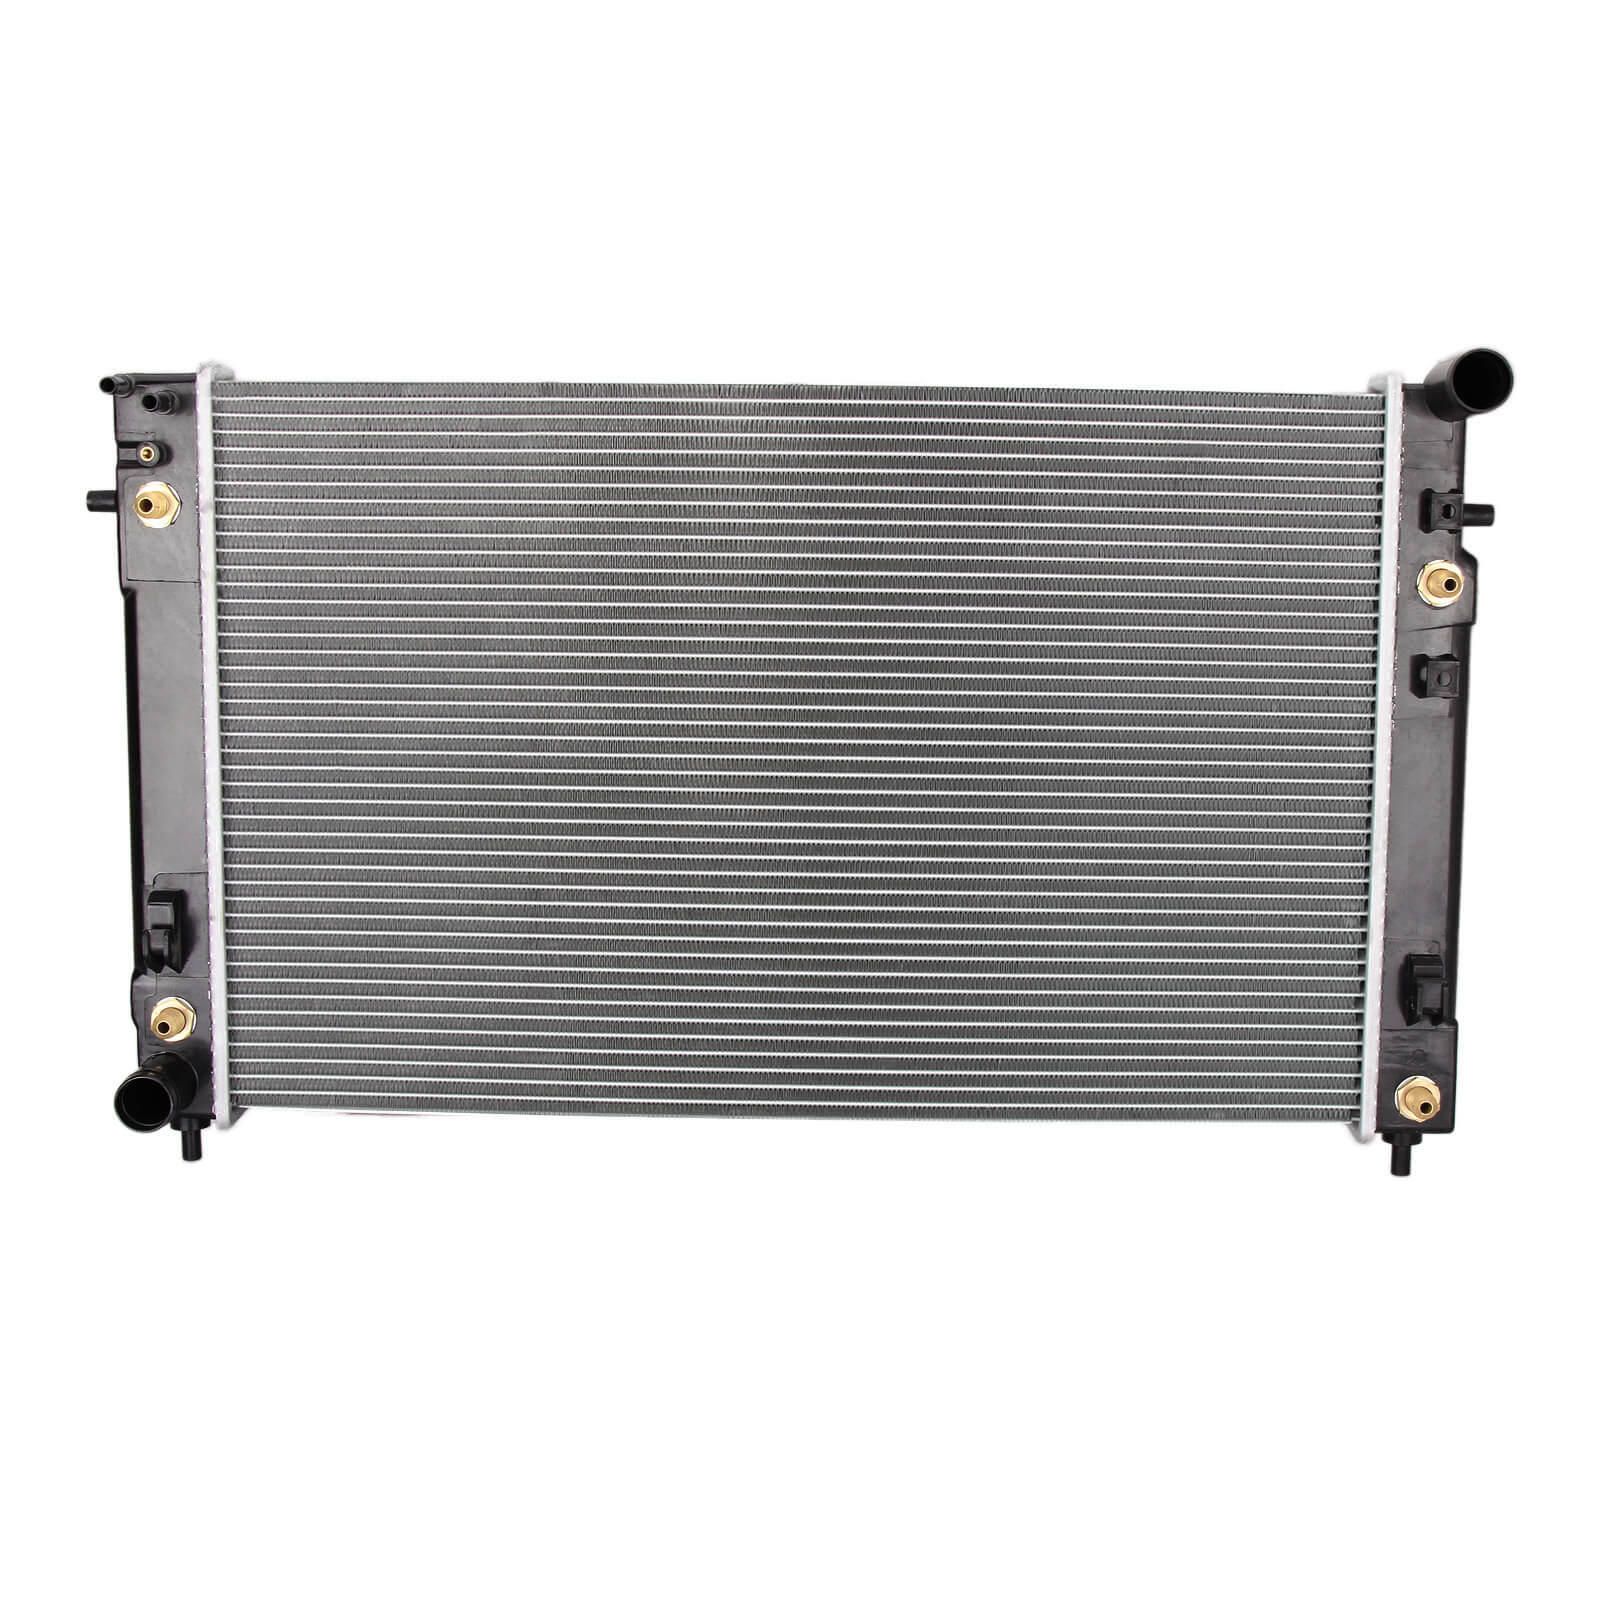 Dromedary Radiator Holden Commodore VT VU VX HSV V8 GEN3 LS1 5.7L 1997-2002 Auto/Manual HOLDEN RADIATOR image7